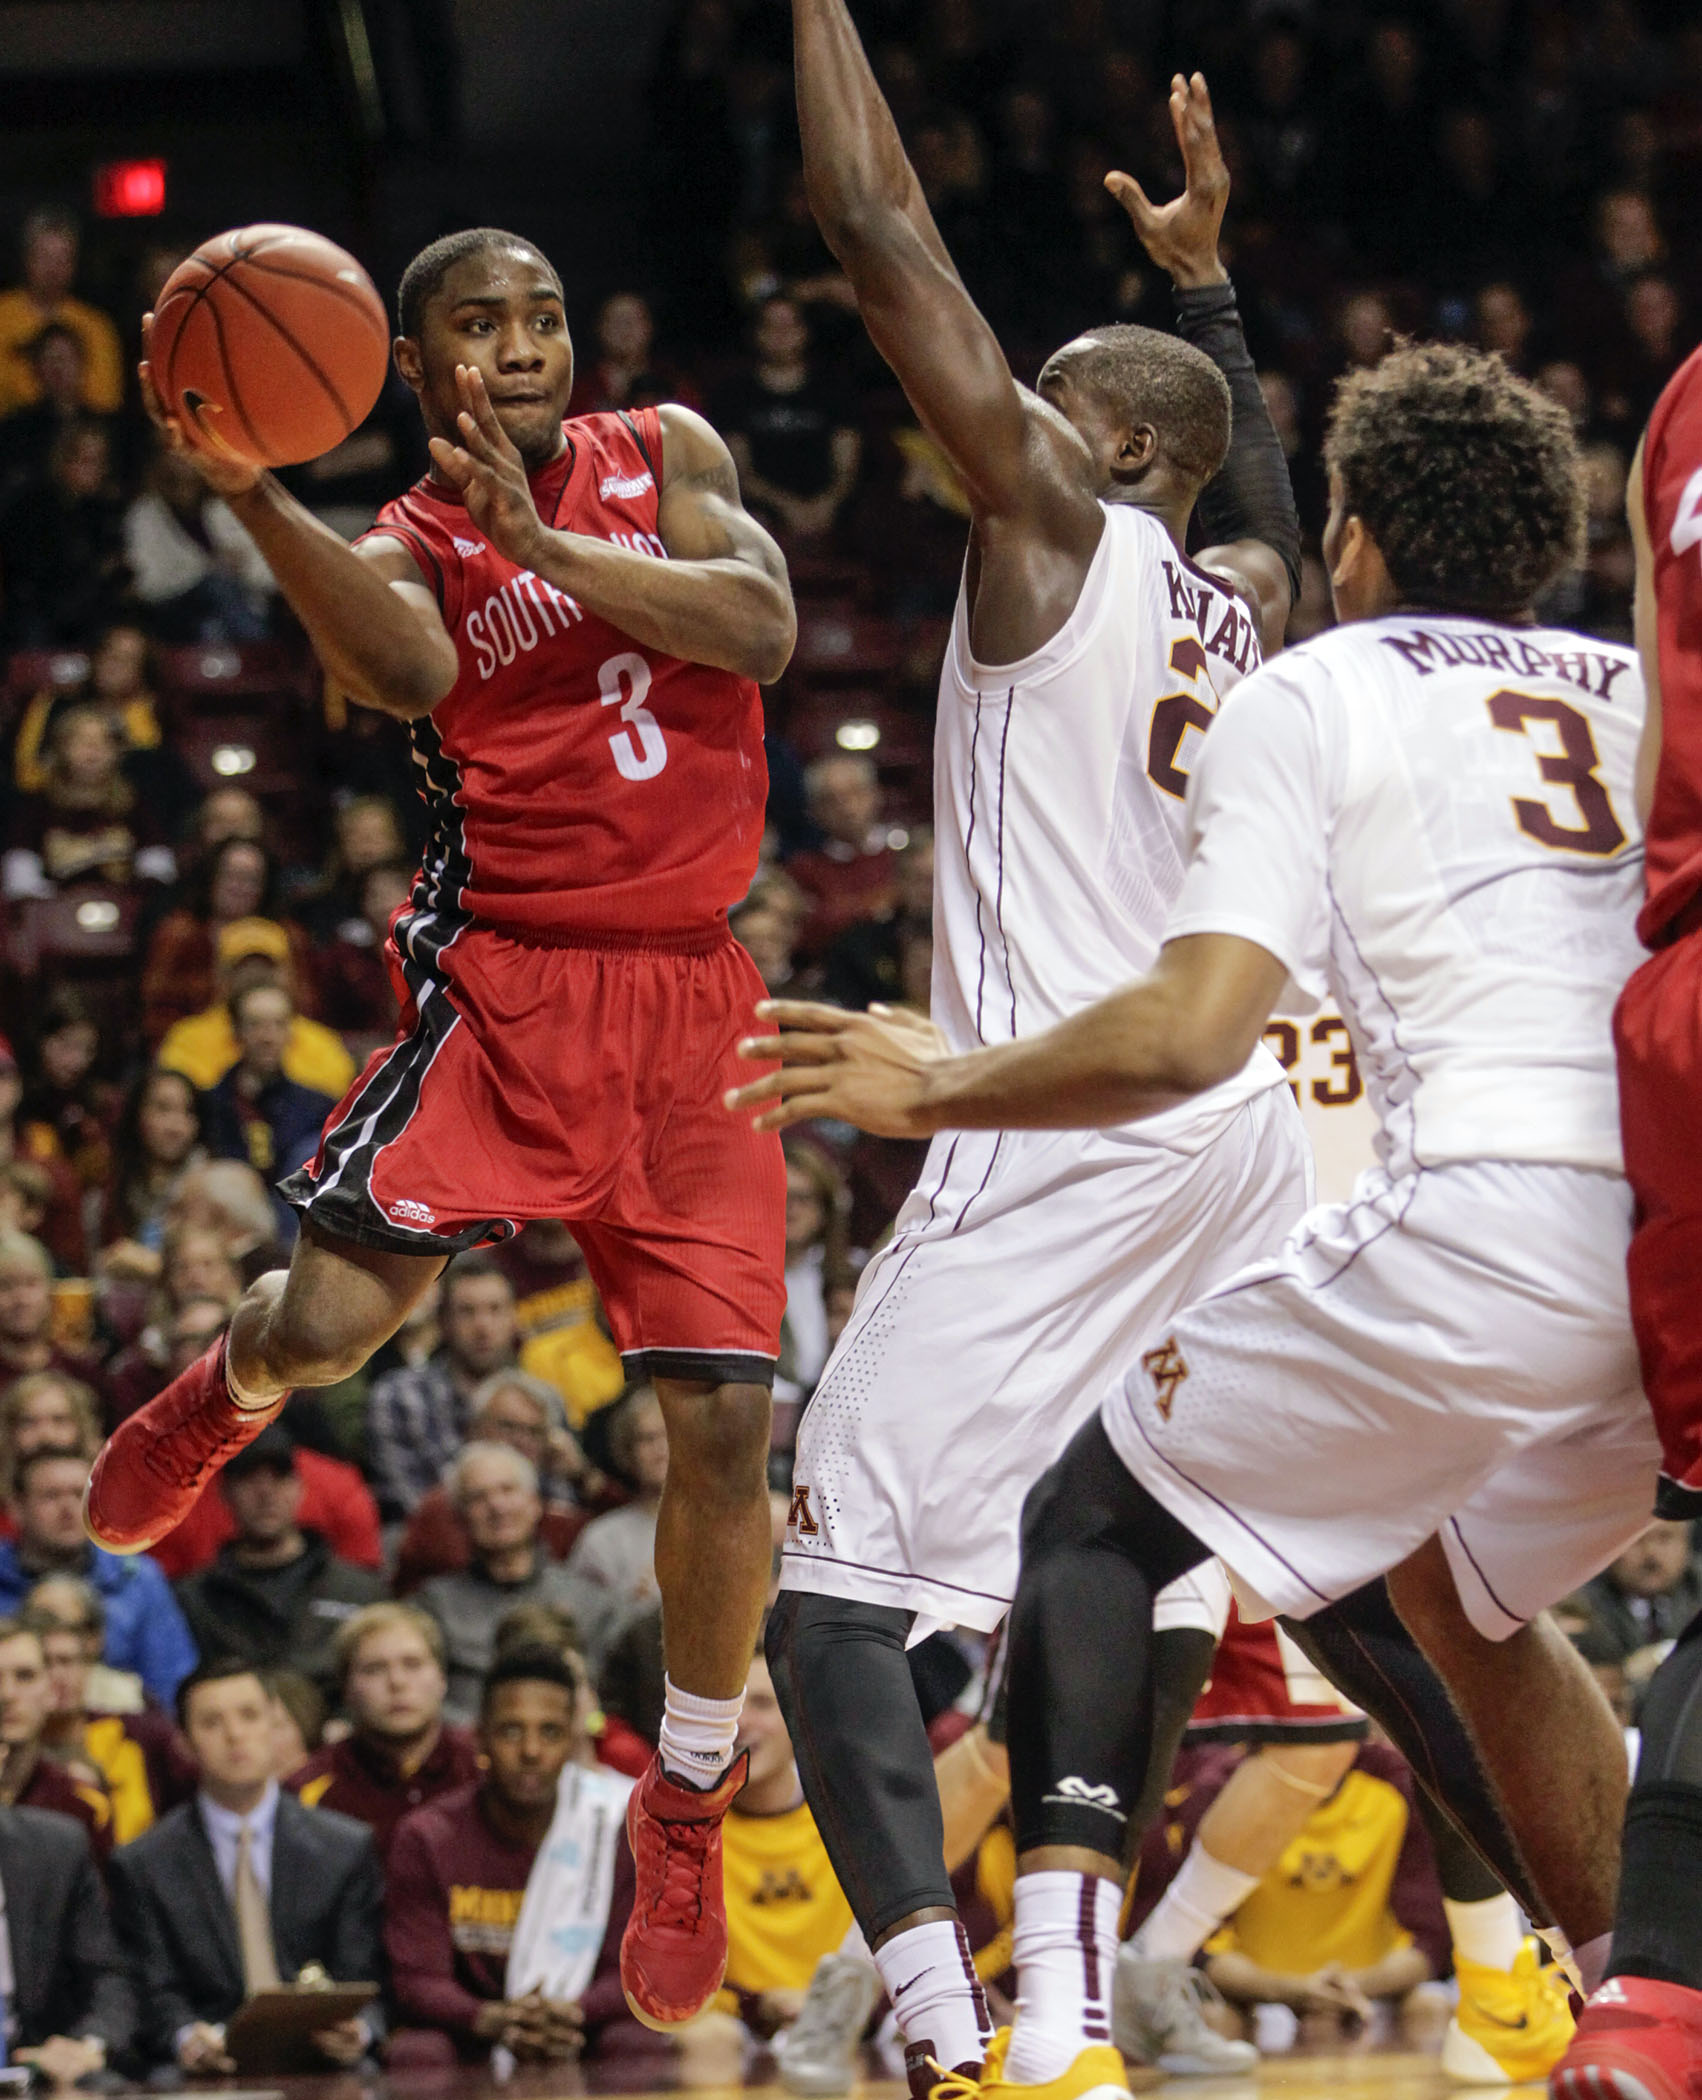 South Dakota guard Shy McClelland (3) looks to pass around Minnesota's Charles Buggs (23) and Jordan Murphy (3) during the first half of an NCAA college basketball game, Saturday, Dec. 5, 2015, in Minneapolis. AP Photo/Paul Battaglia)